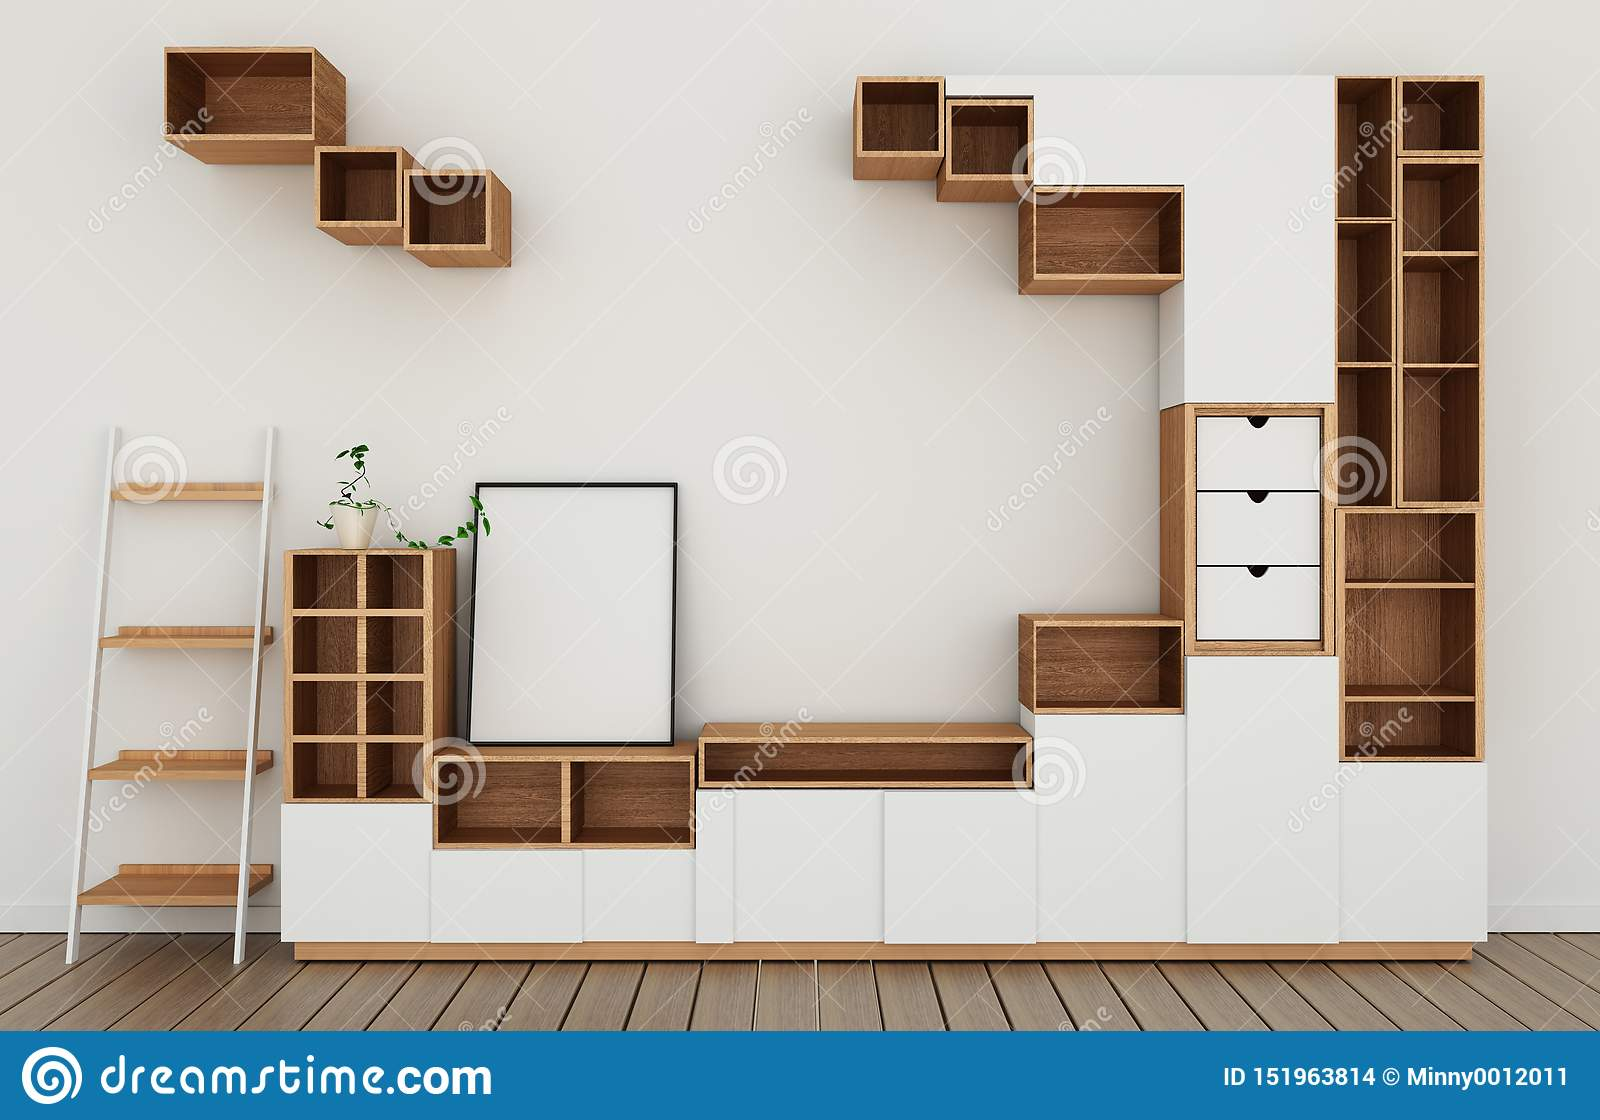 Mock Up Cabinet Design Mockup In Modern Empty Room White Floor Wooden On White Wall Room Japanese Style 3d Rendering Stock Photo Illustration Of Minimal House 151963814